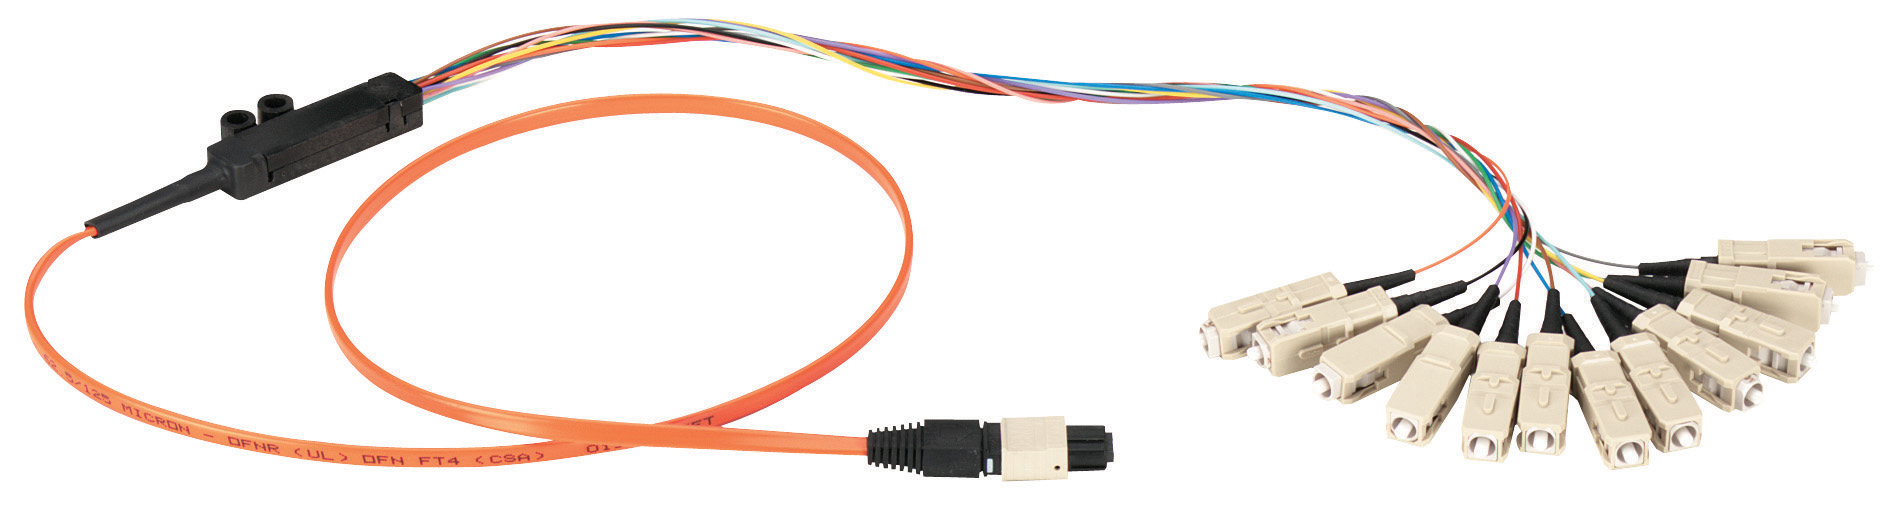 Mtp Fanout Cable 12 Strand 1 F To Mu M Custom Length Black Box Wiring 4 Quot Male Jack Additional Product Image